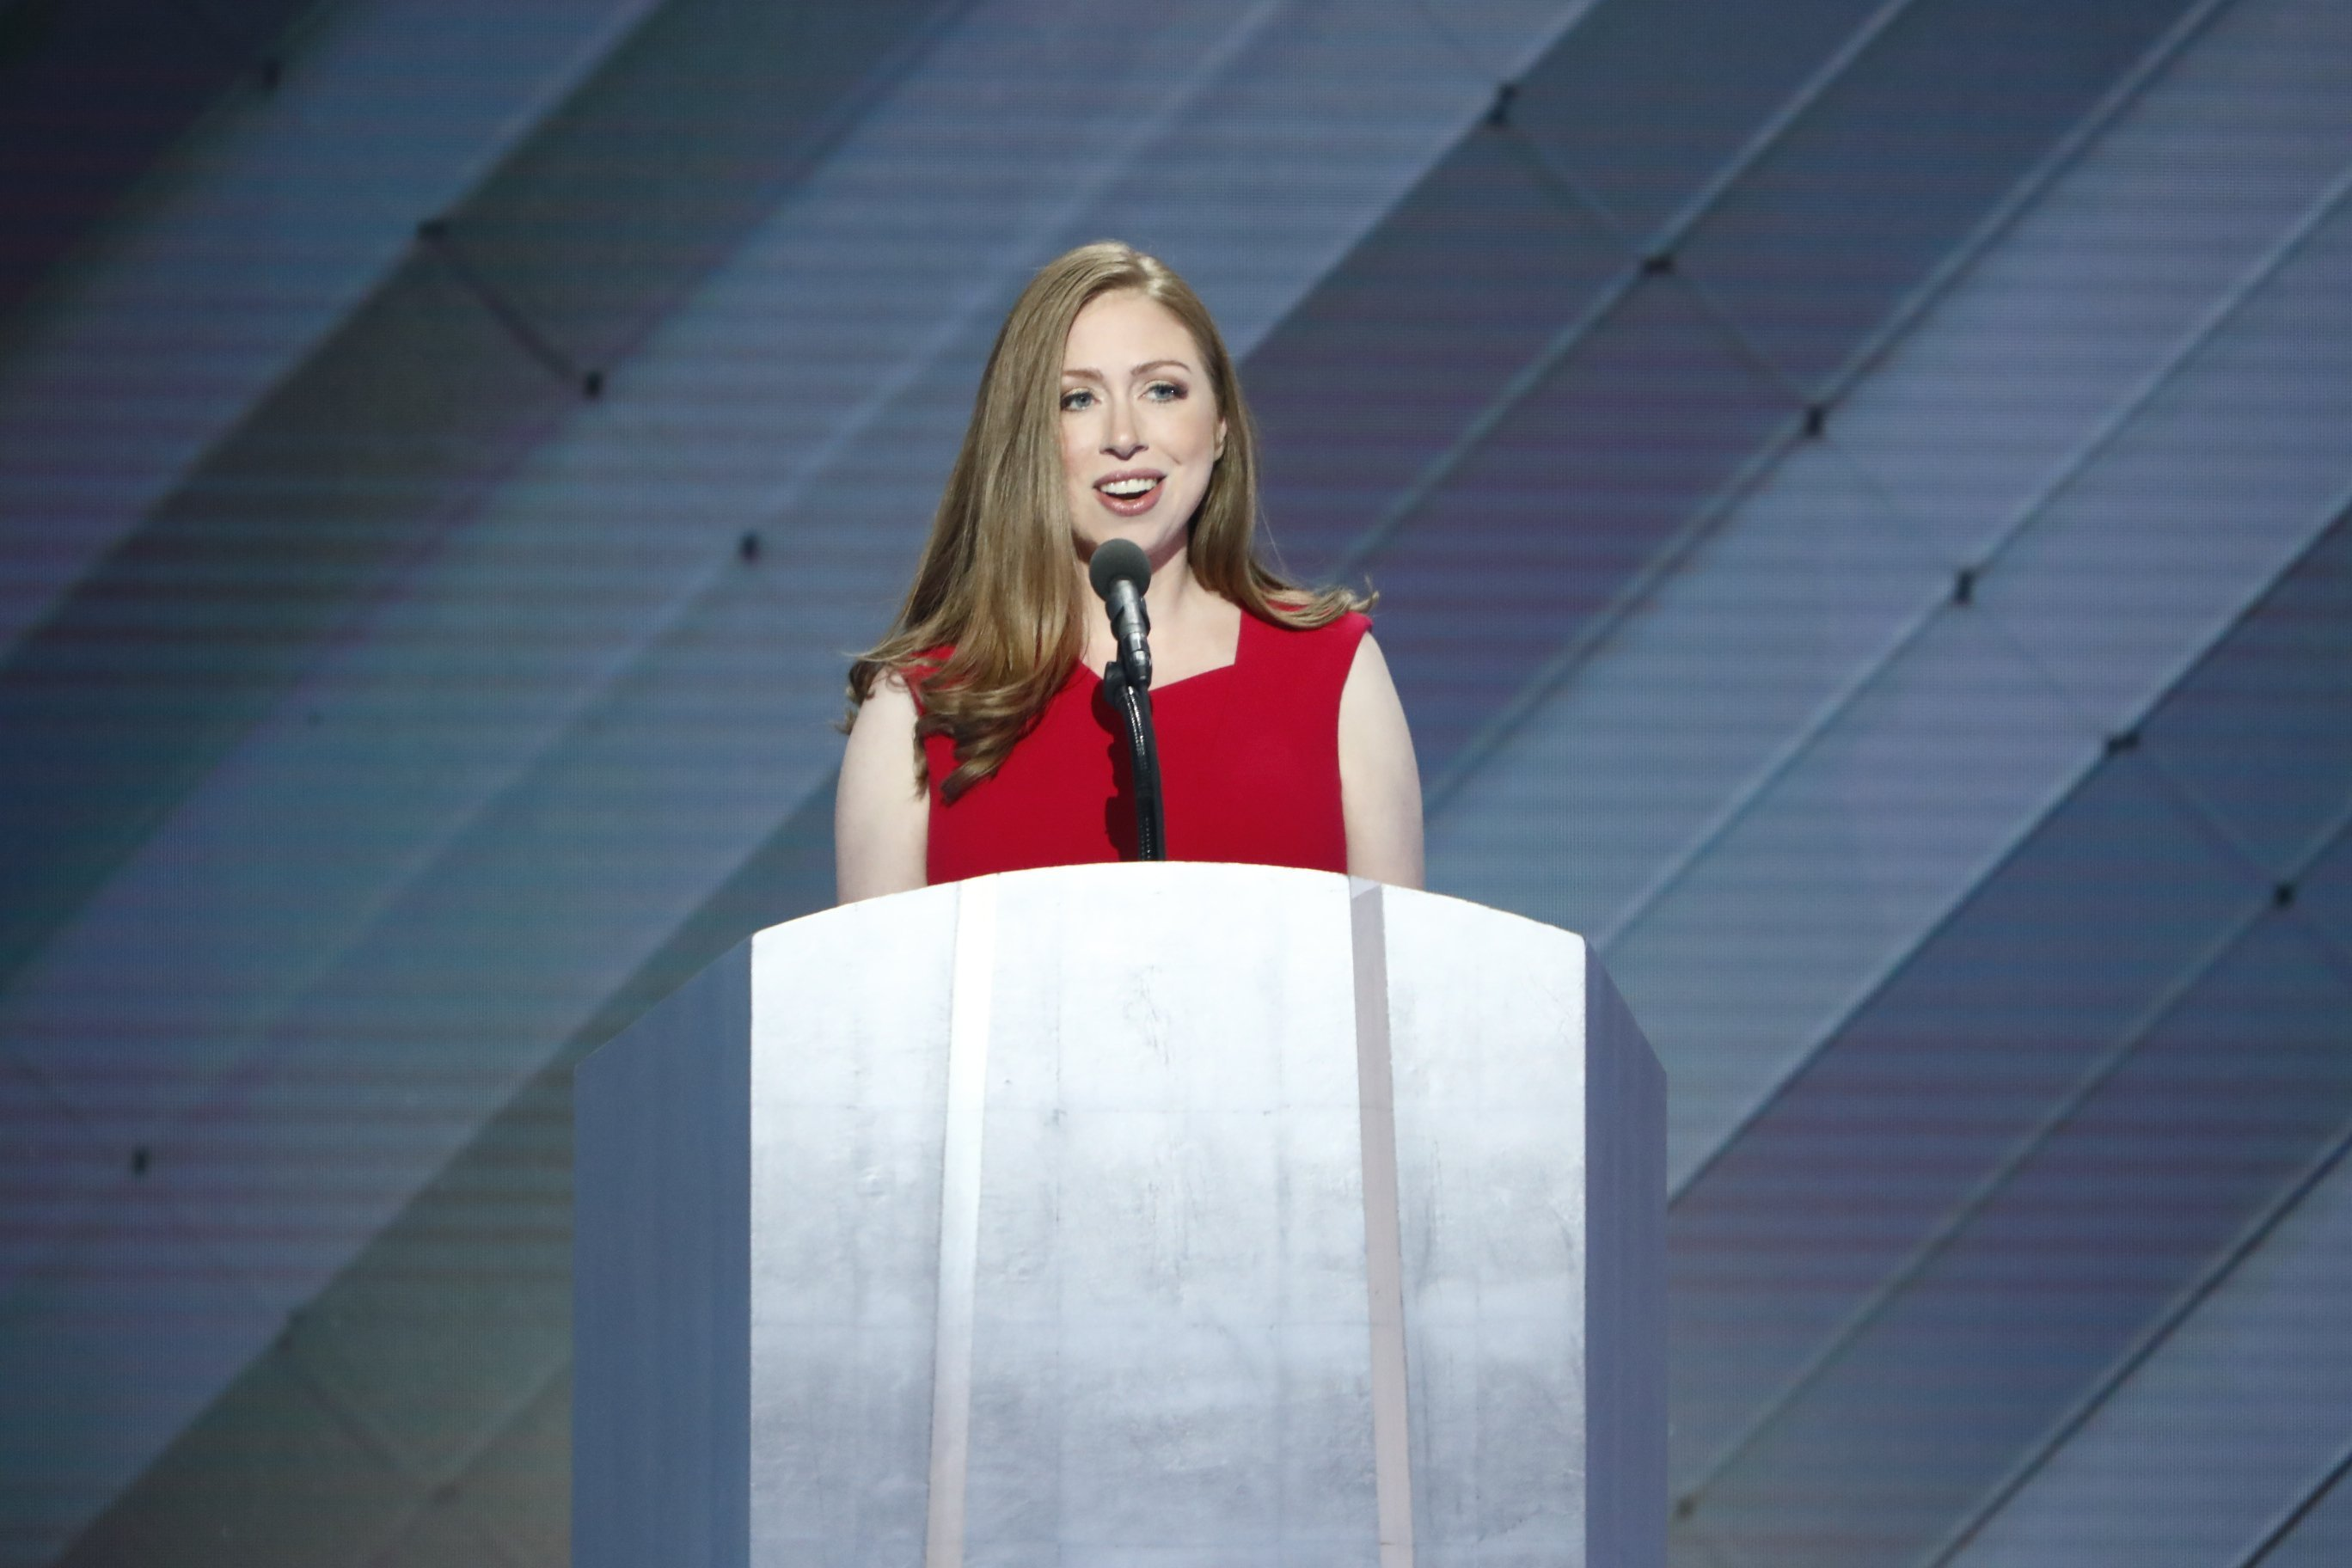 Chelsea Clinton joins Board of Directors at Expedia